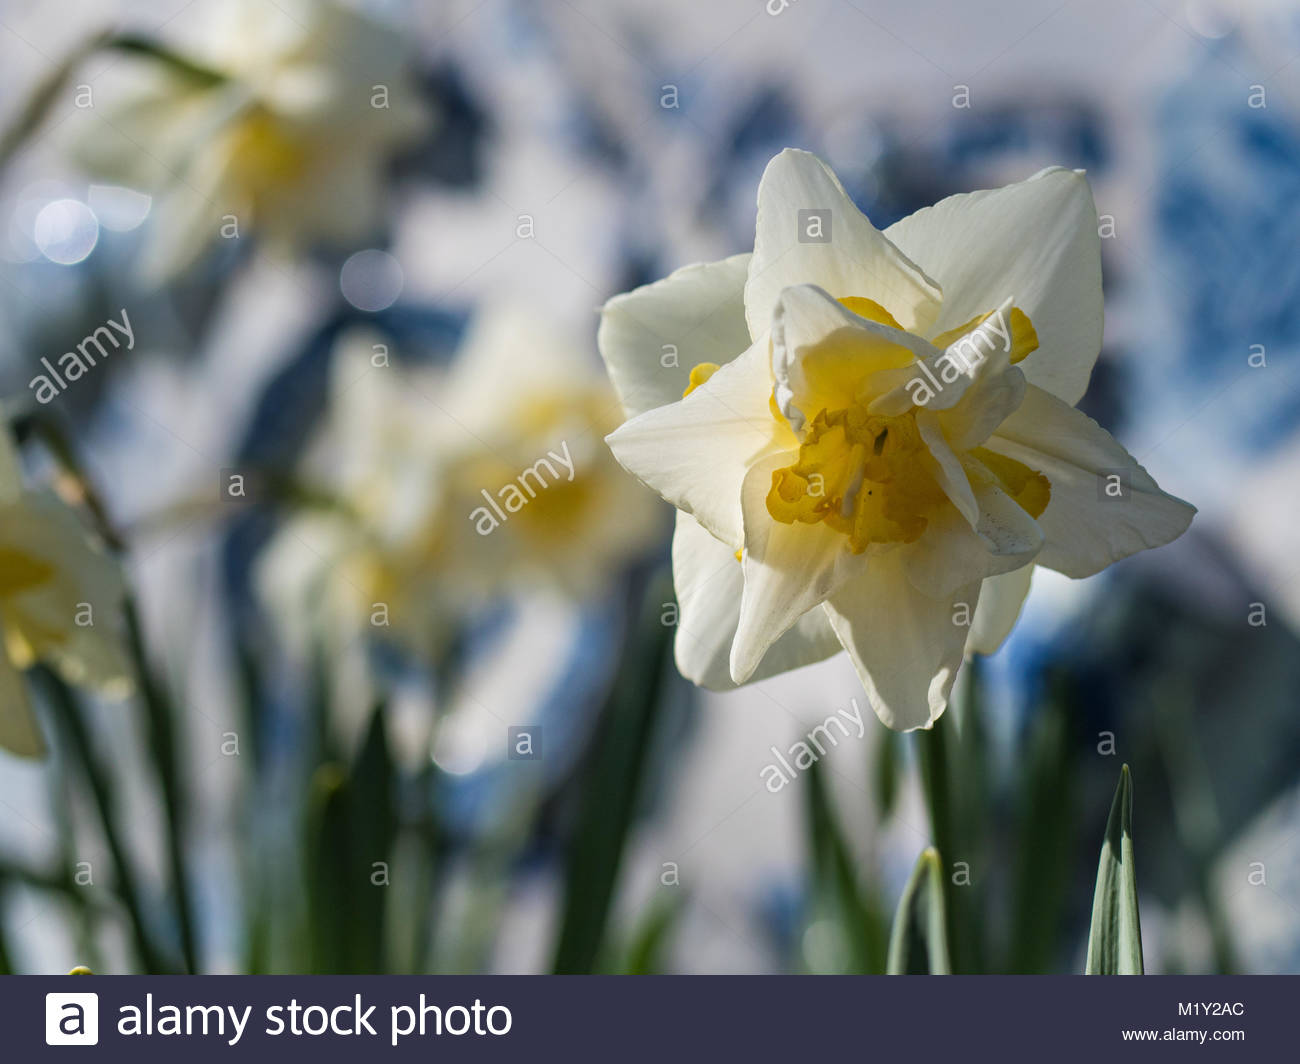 white single narcissus in flower field, relaxing, calming and peaceful colors, light blue and green contrasts - Stock Image